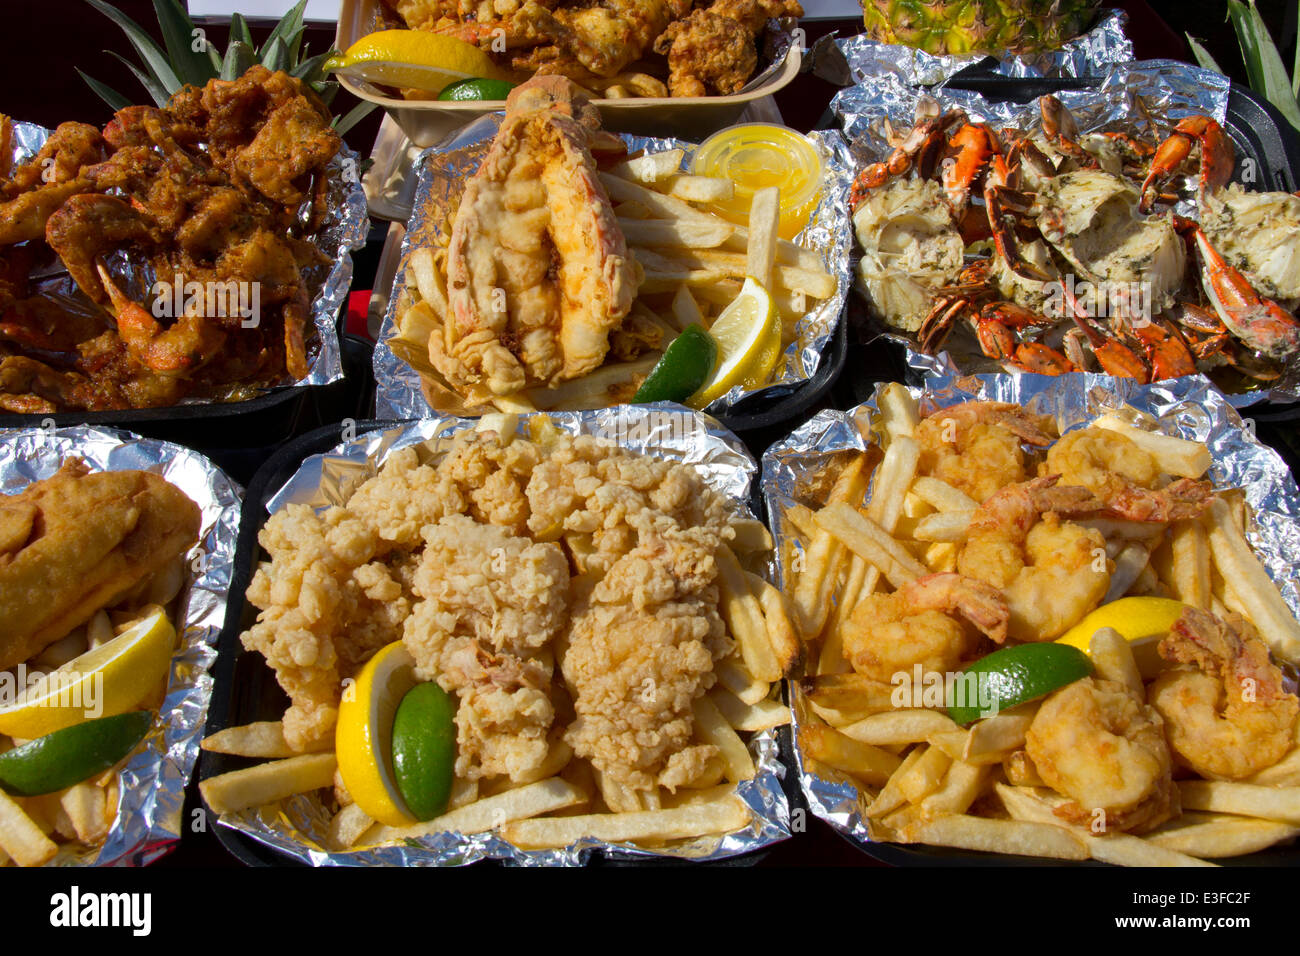 Shrimp, lobster, crab and plenty of other choices are available at the St. Augustine Lions Seafood Festival, St. - Stock Image